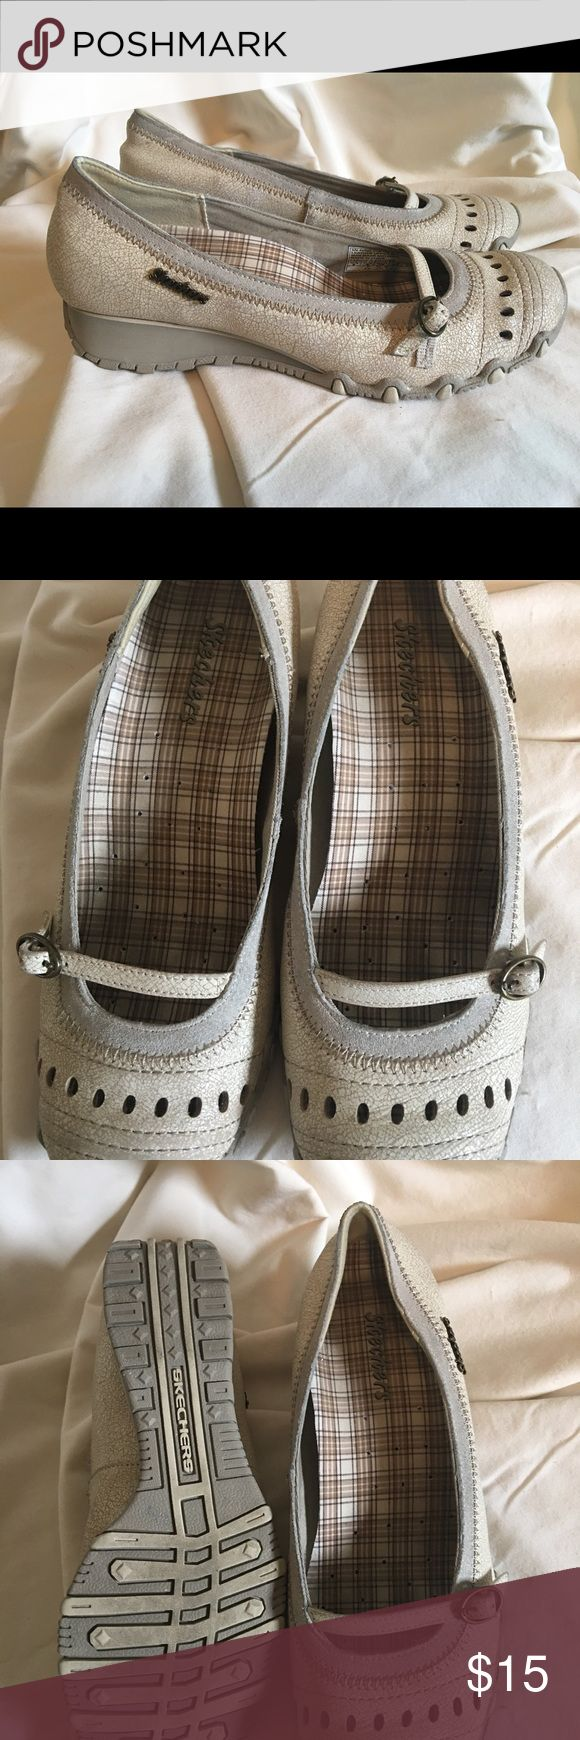 ladies Skechers slip on EUC worn less than a handful of times! Super cute slip on with a very slight heel. Color is a distressed taupe. Gold Skechers emblem on the side. Memory foam soles Skechers Shoes Flats & Loafers